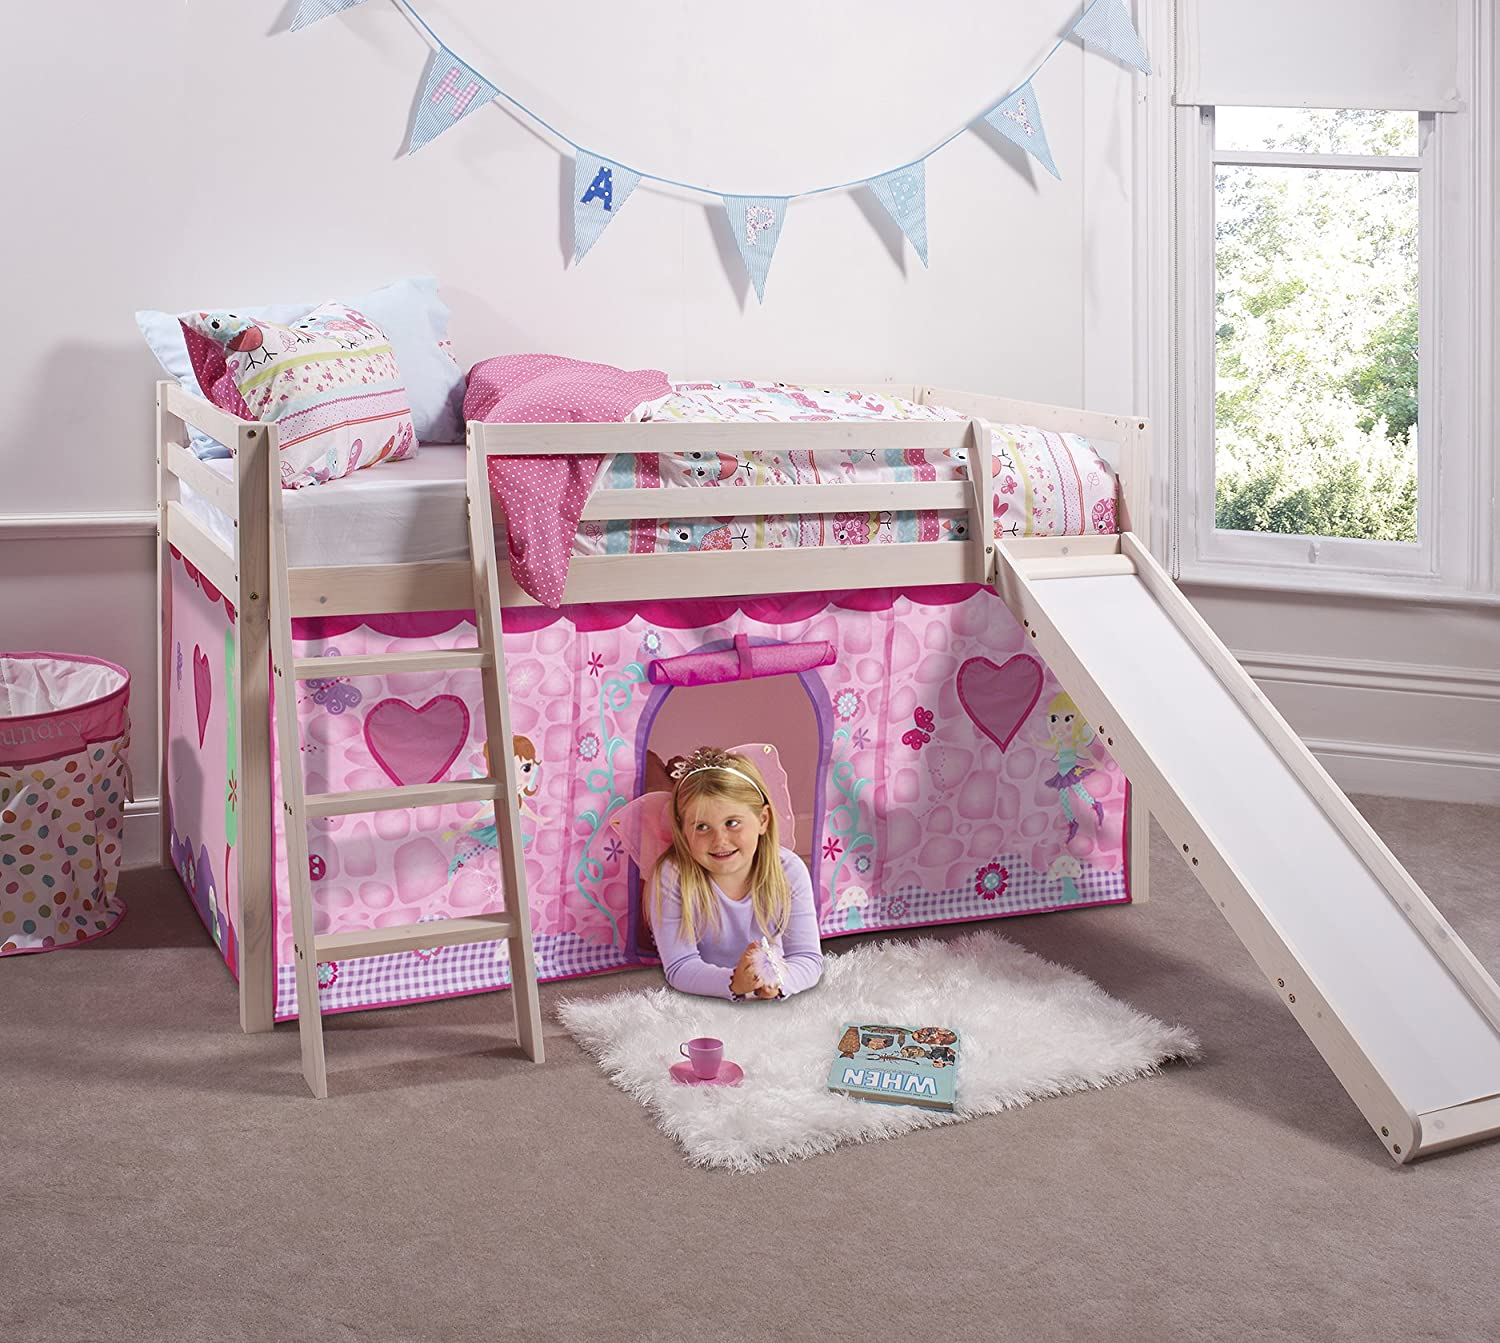 Cabin Bed Mid Sleeper in Whitewash with Fairy Tent (66-WW-FAIRIES) Noa & Nani